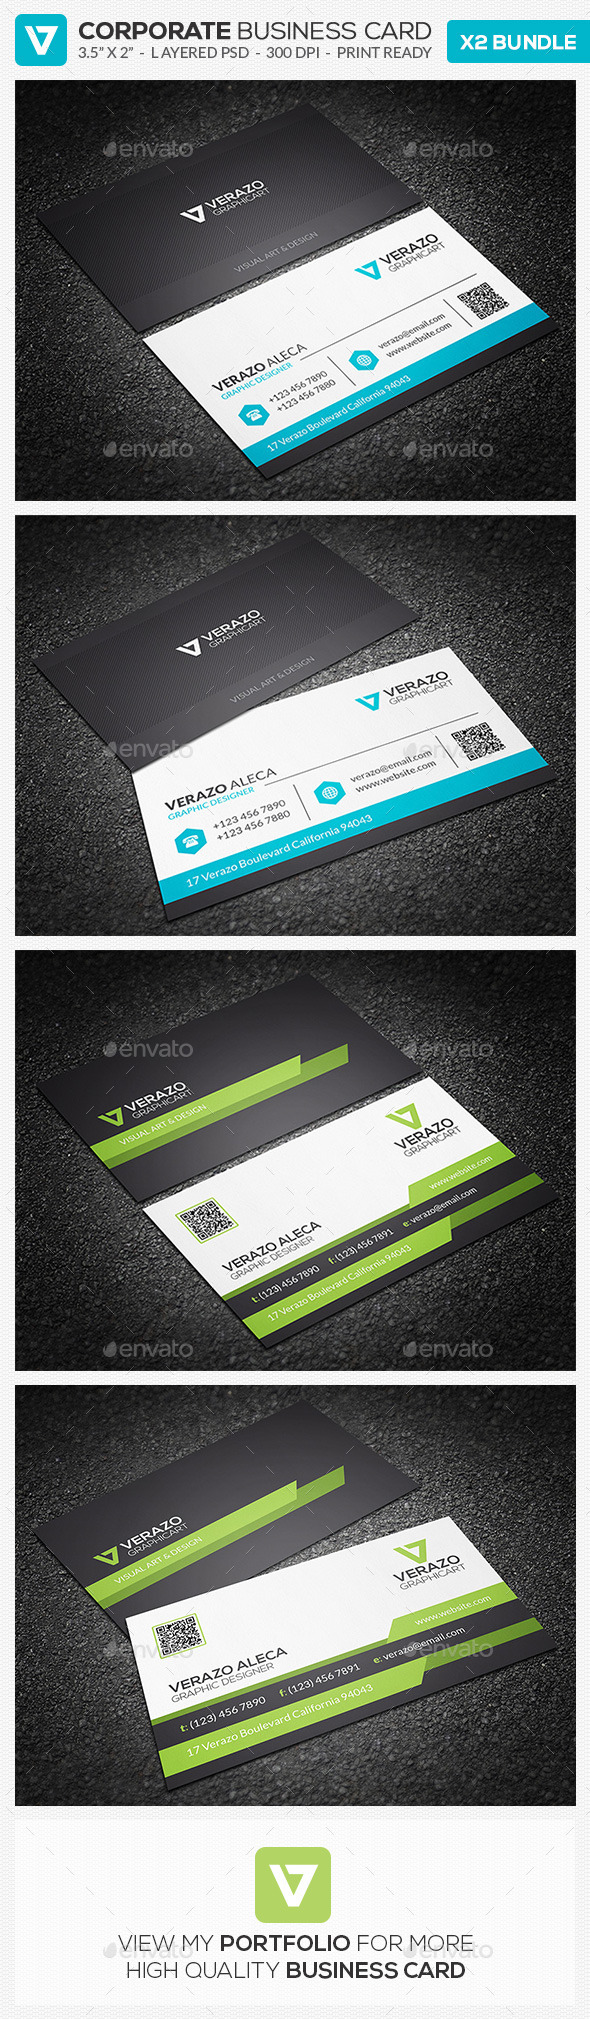 GraphicRiver Business Card Bundle 11 9589877